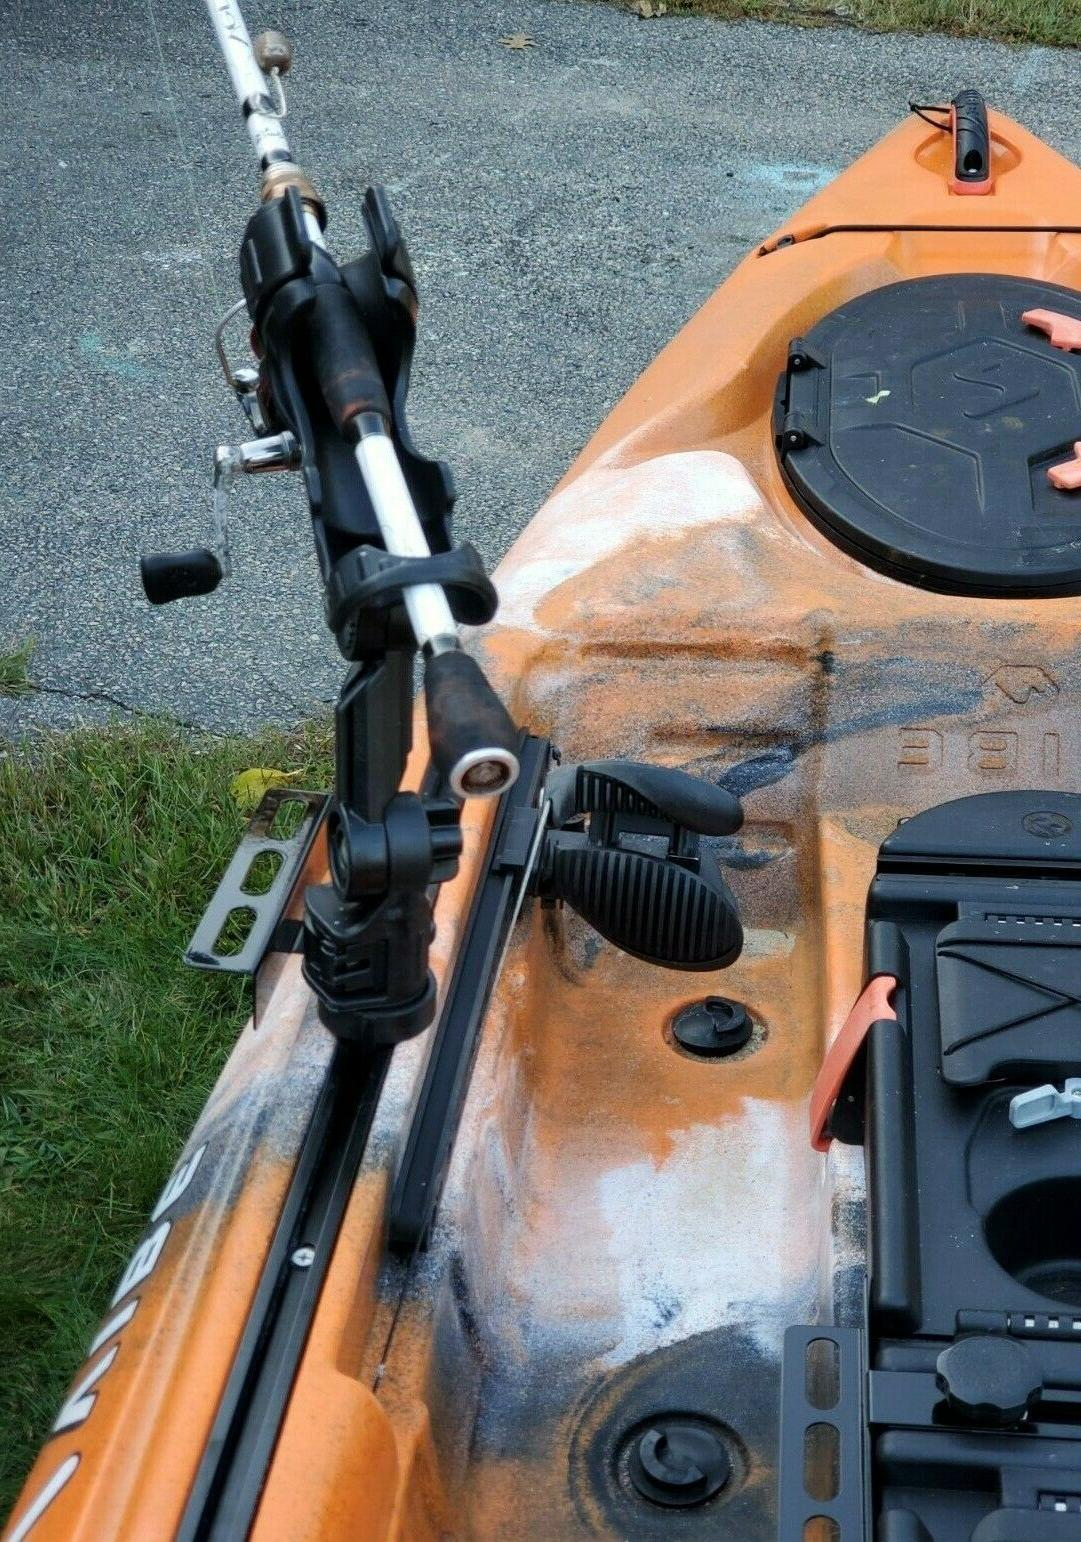 Kayak Track Tool Holder, Rod lease Accessories